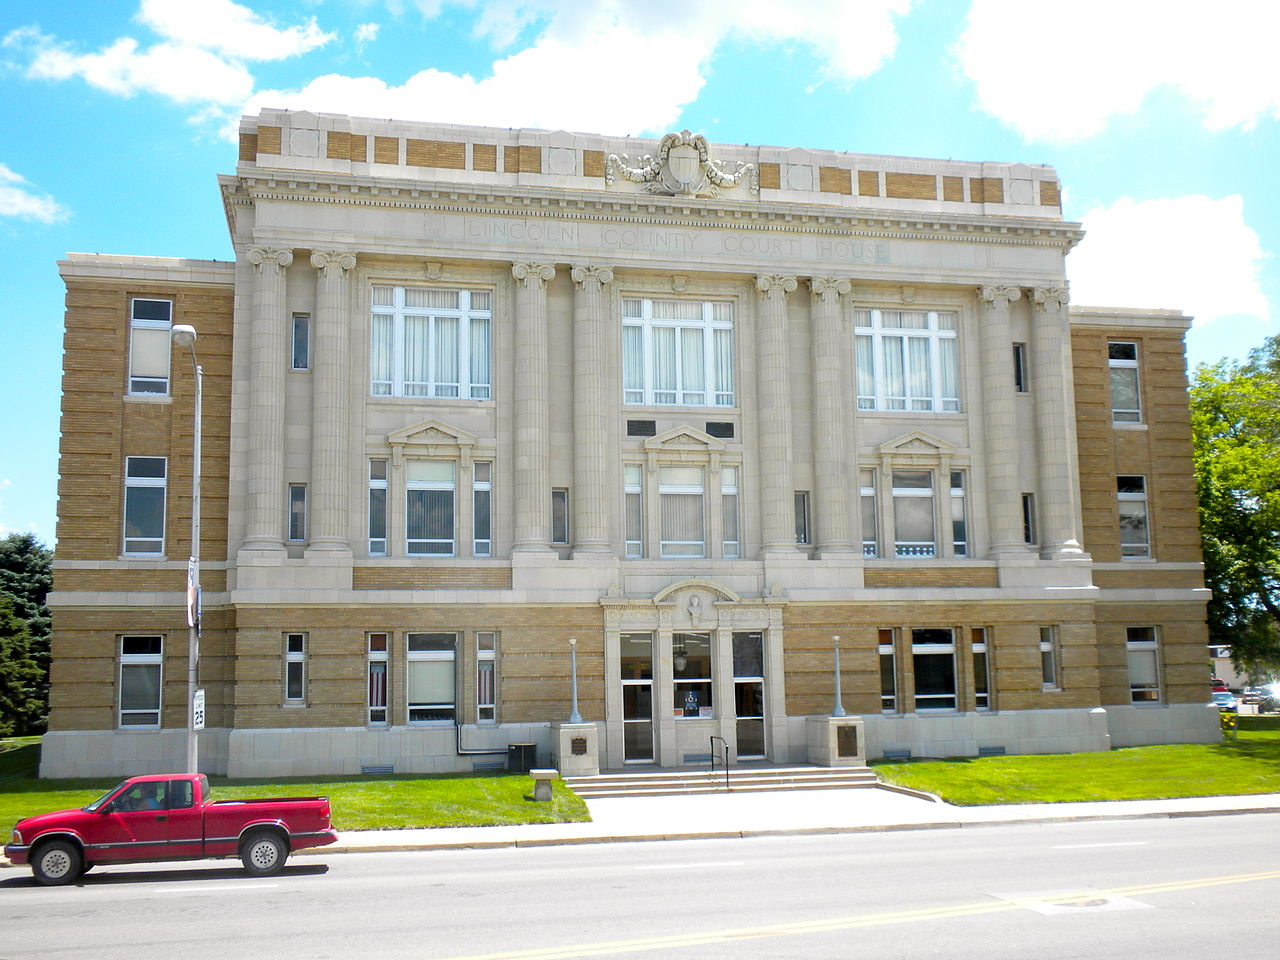 The Lincoln County Courthouse was built in 1924